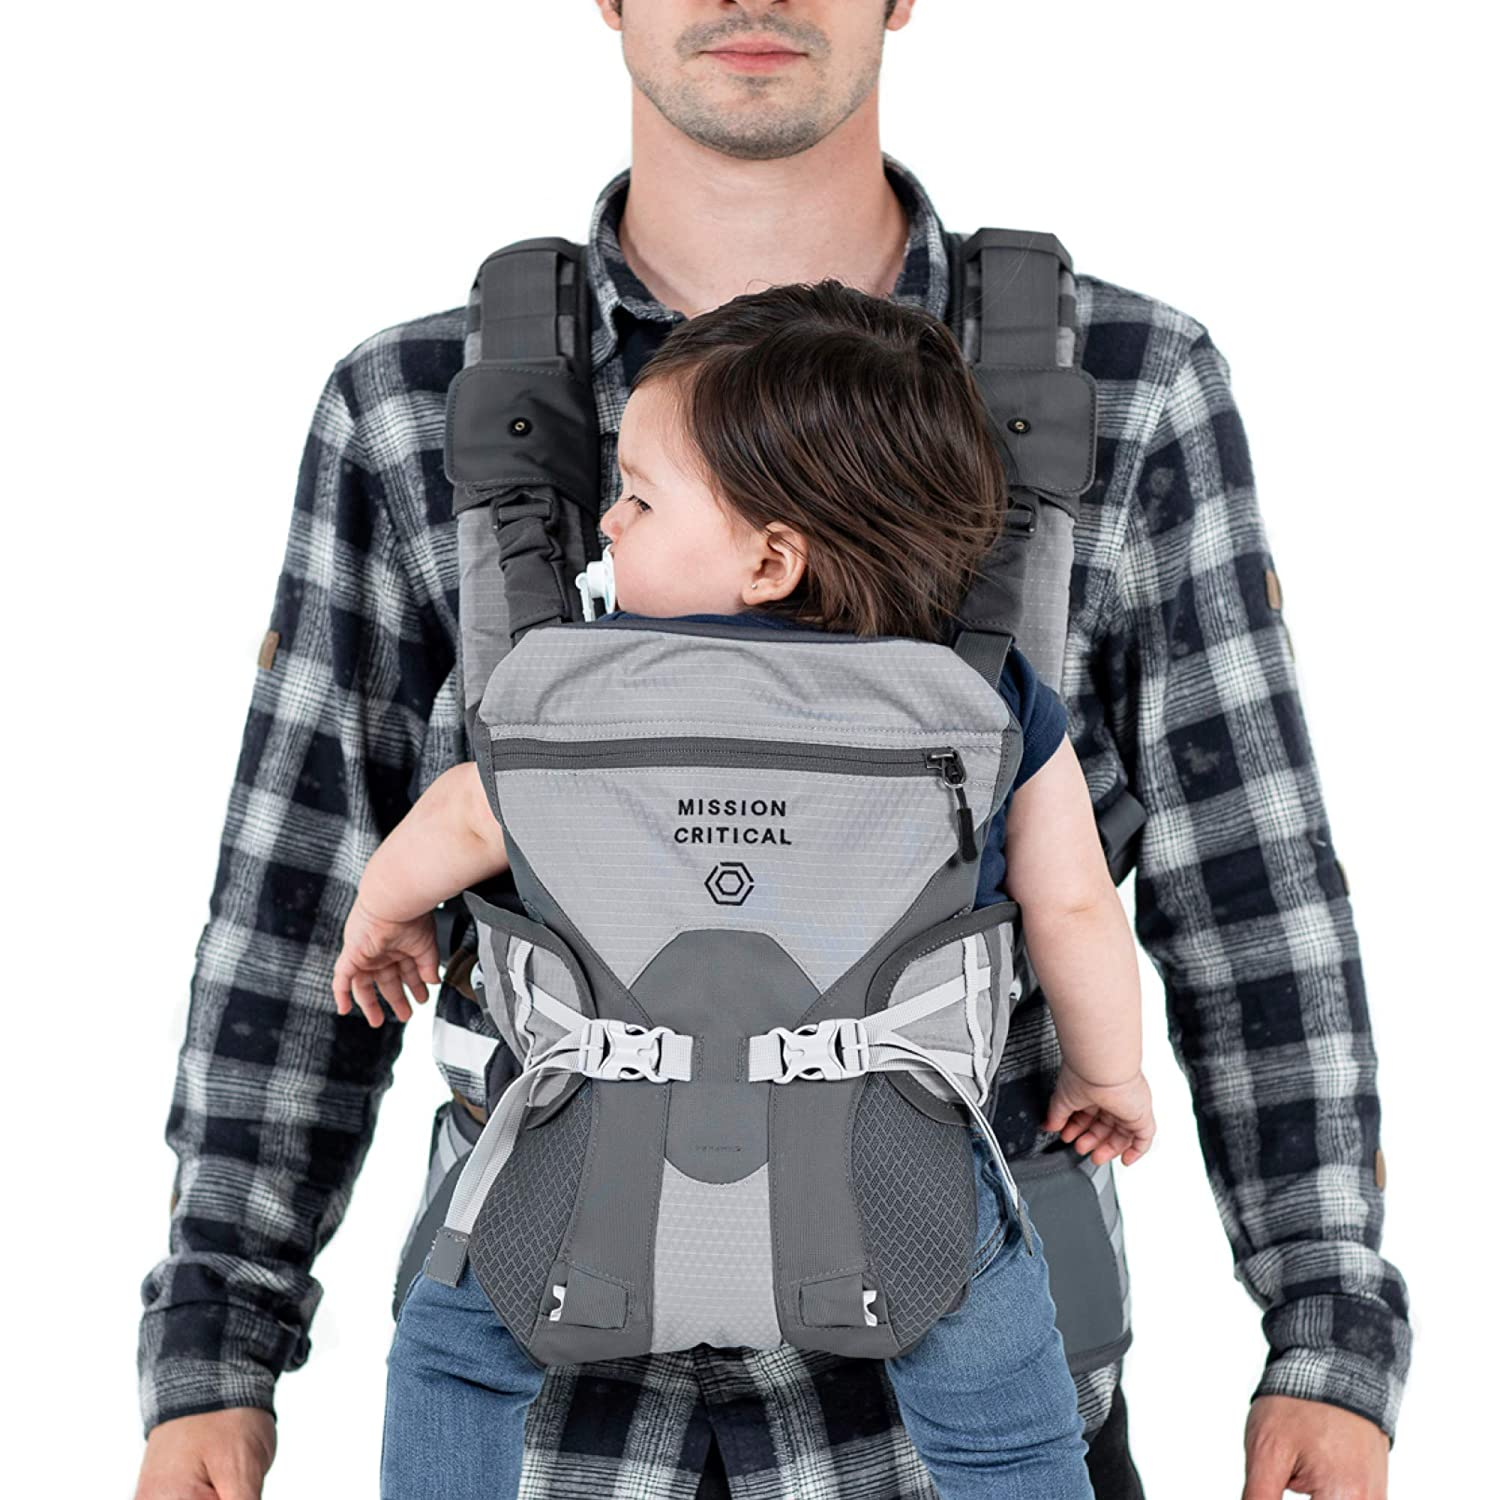 Mission Critical Baby Carrier System 02 Baby Carrier For Men Front Back Carrier Titanium